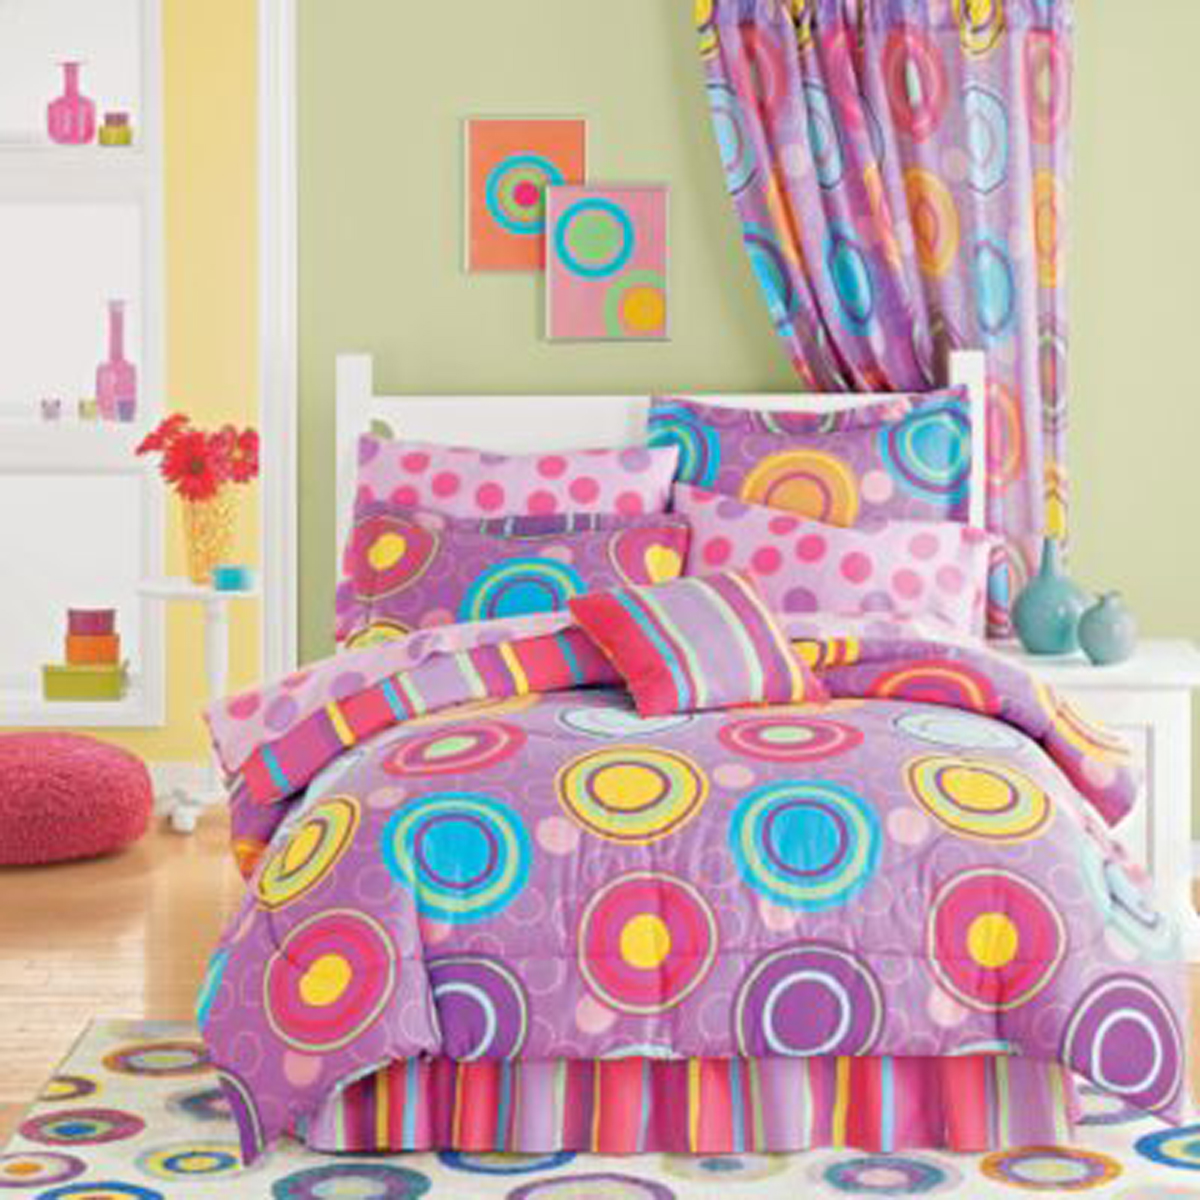 Decorating ideas for kids rooms decoration news Fun bedroom decorating ideas